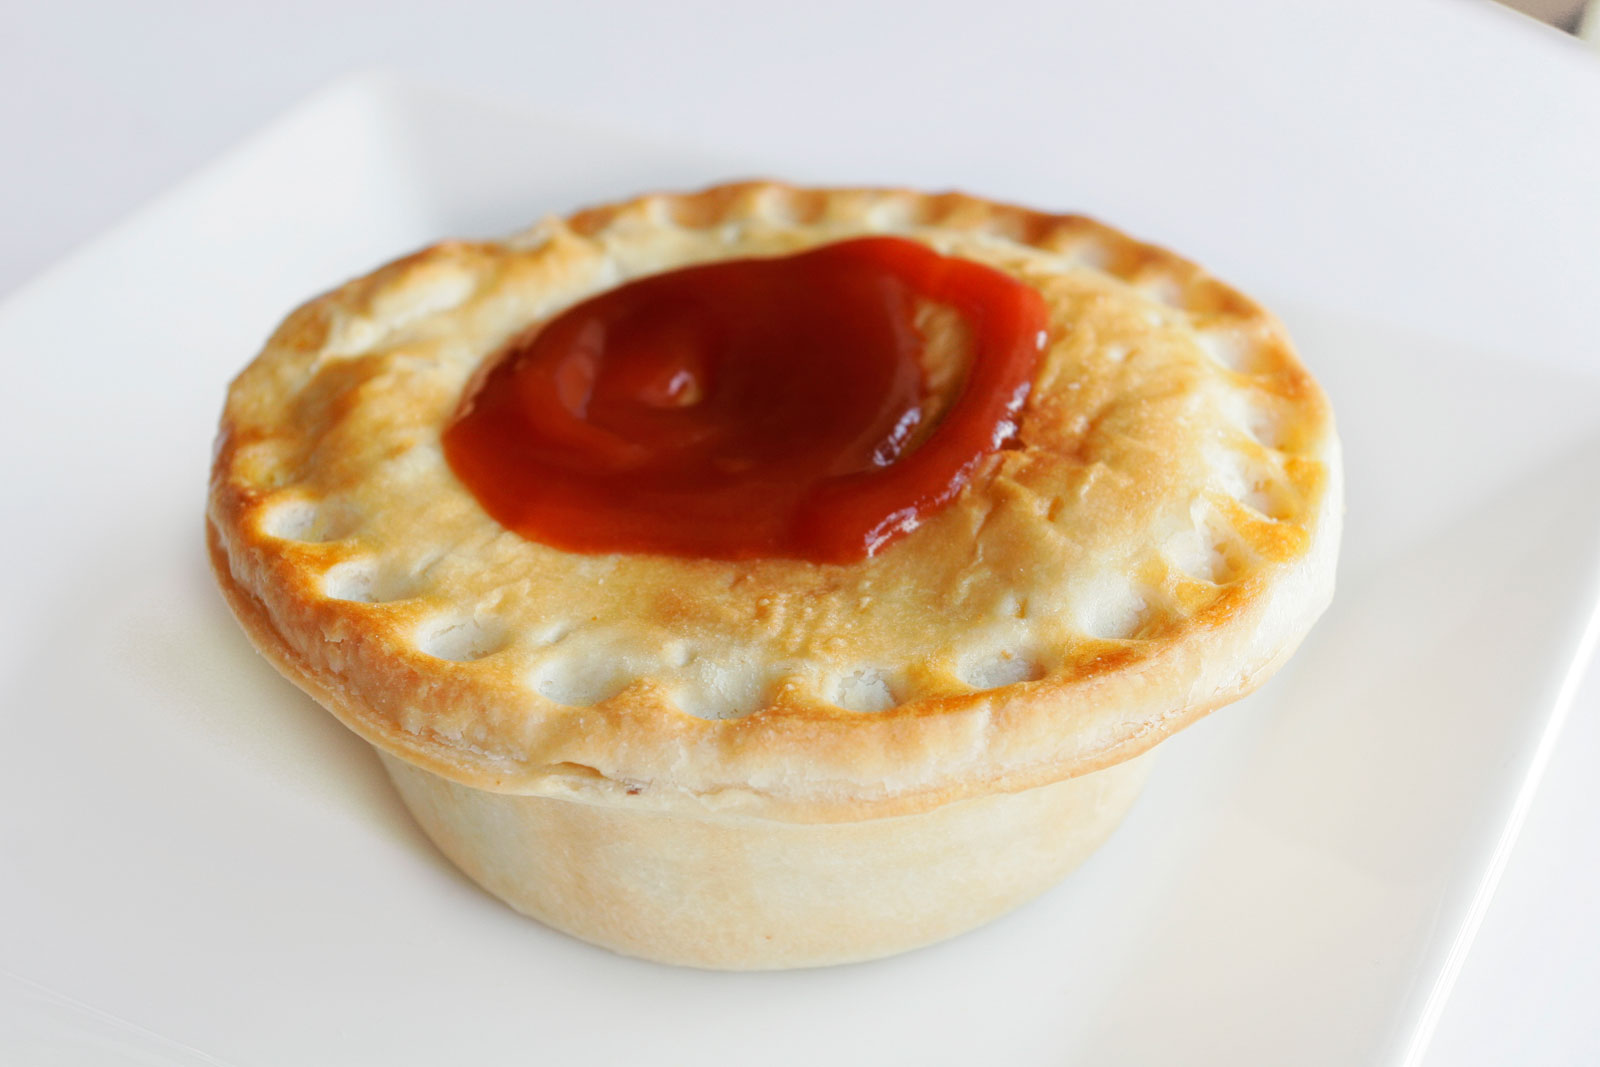 Energize gives filling to pie company